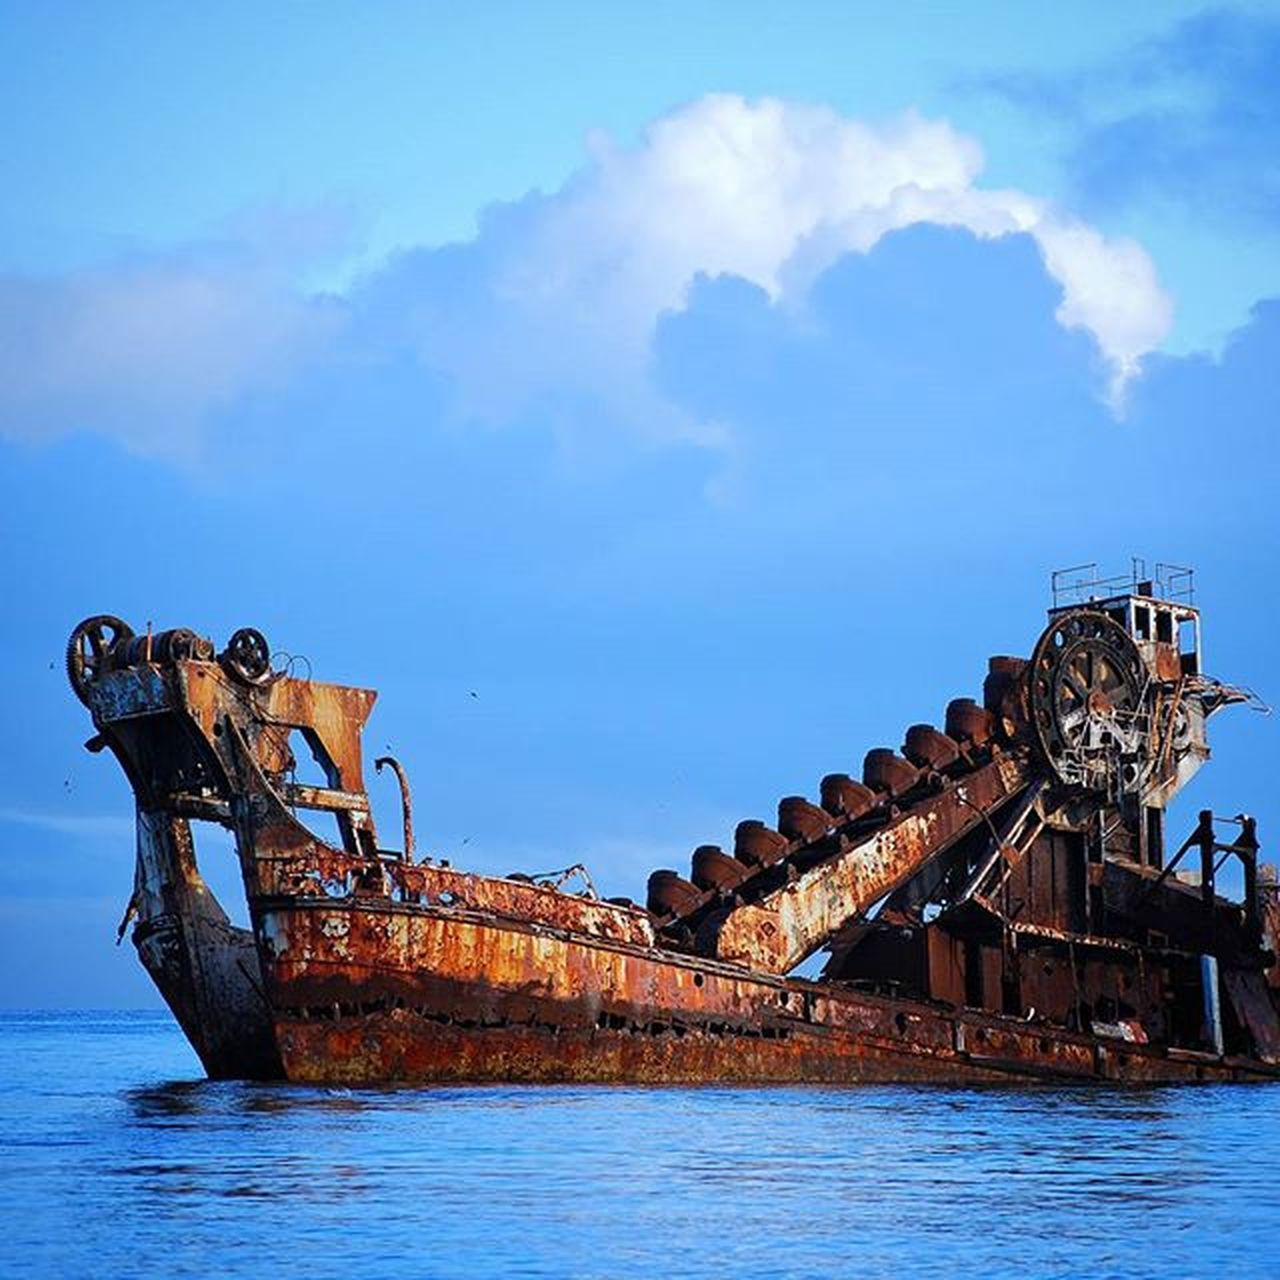 Moreton Island wreck Lead_me_to_oblivion Moretonisland Shipwreck Wreck Water Ocean Beach Awesome Horizon Photography Nikon Adventures Clouds Rust Blue Island Queensland Australia